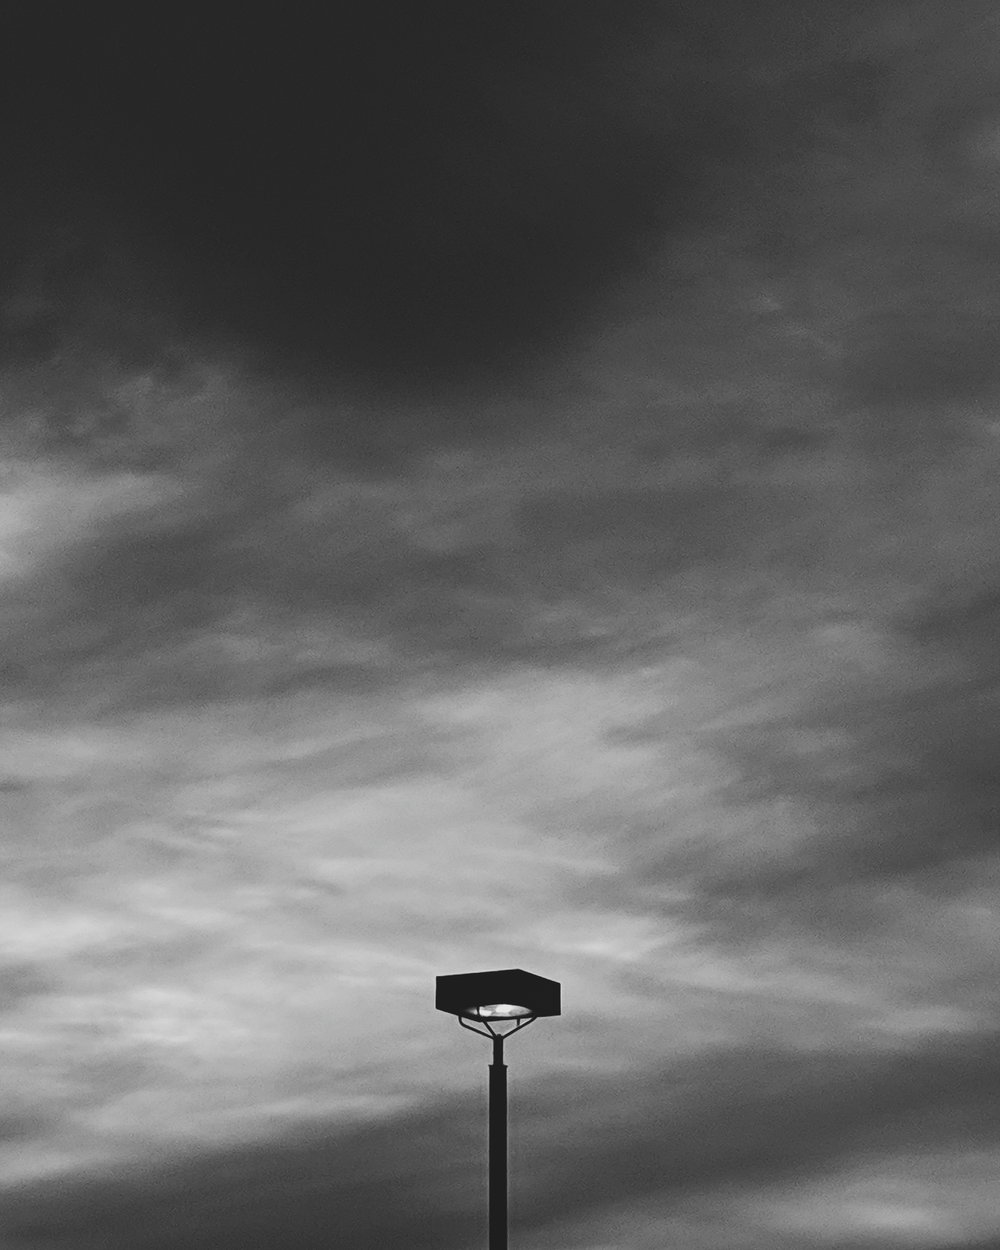 Day 12- 365 B&W Challenge - A simple lamp post against the evening sky - Google Pixel 3, Moment 58mm Tele Lens, VSCO B5